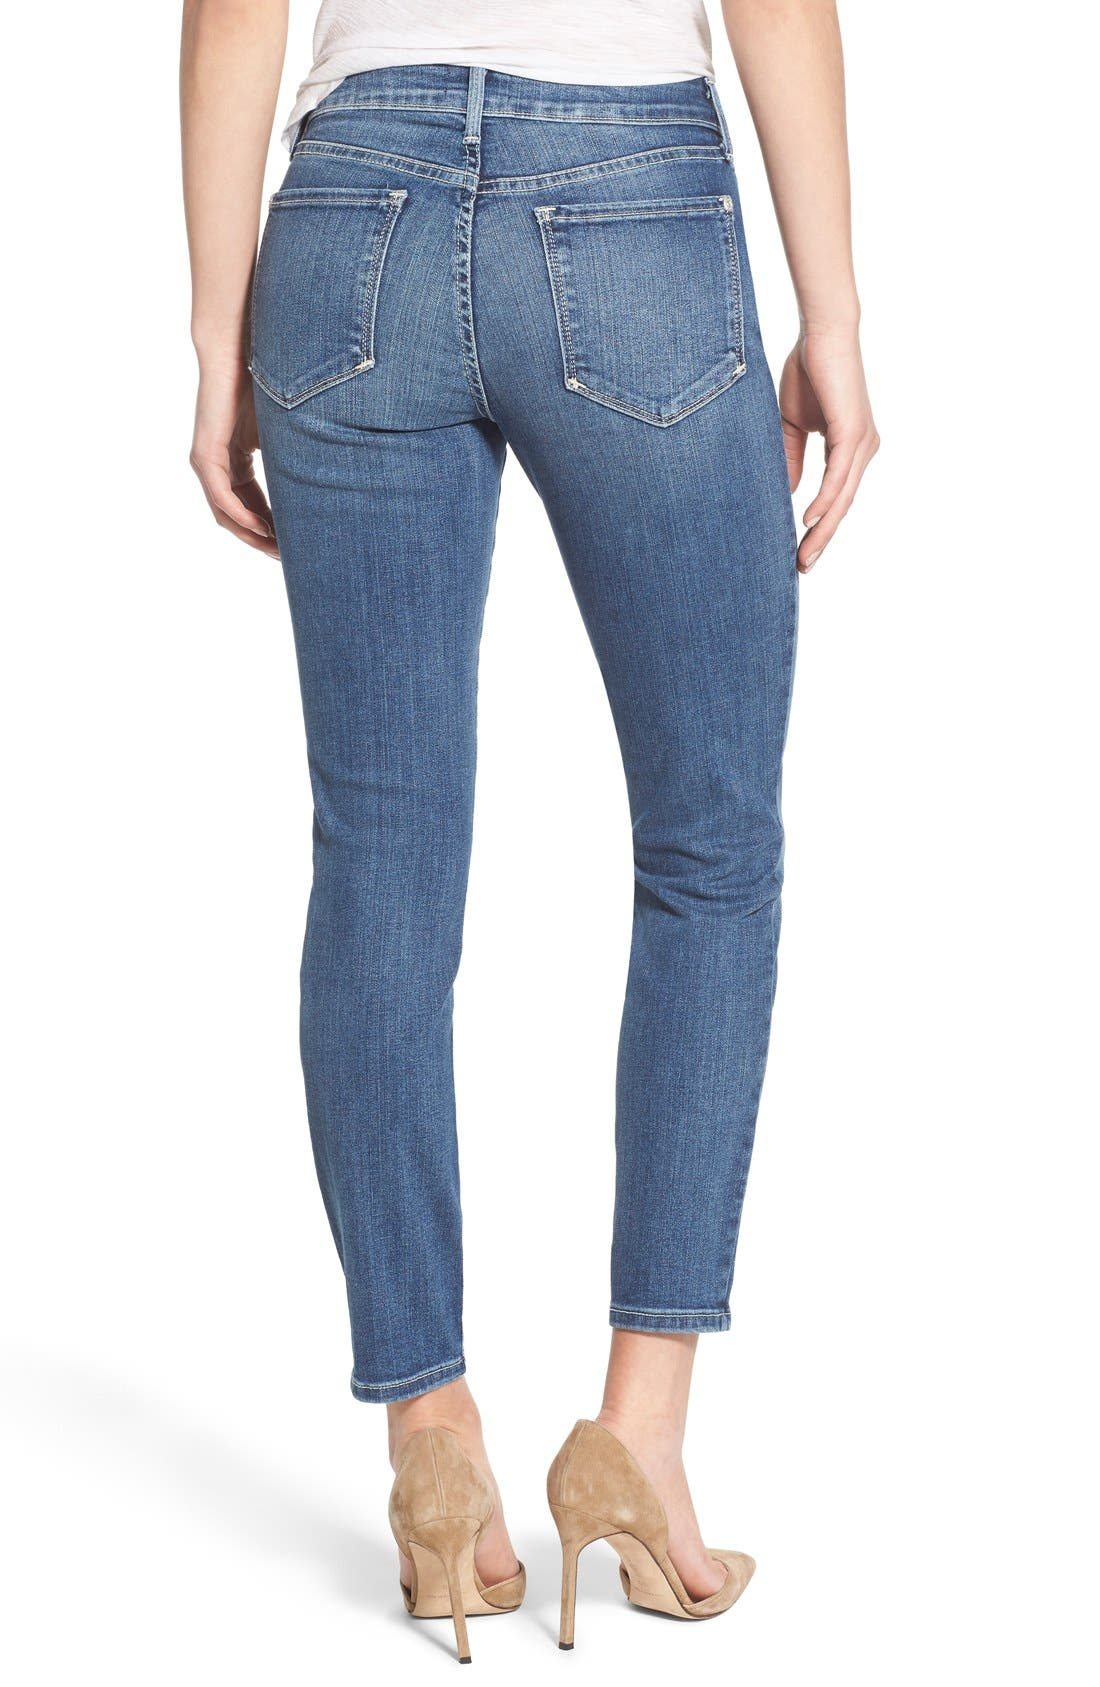 'Clarissa' Stretch Ankle Skinny Jeans,                             Alternate thumbnail 2, color,                             Heyburn